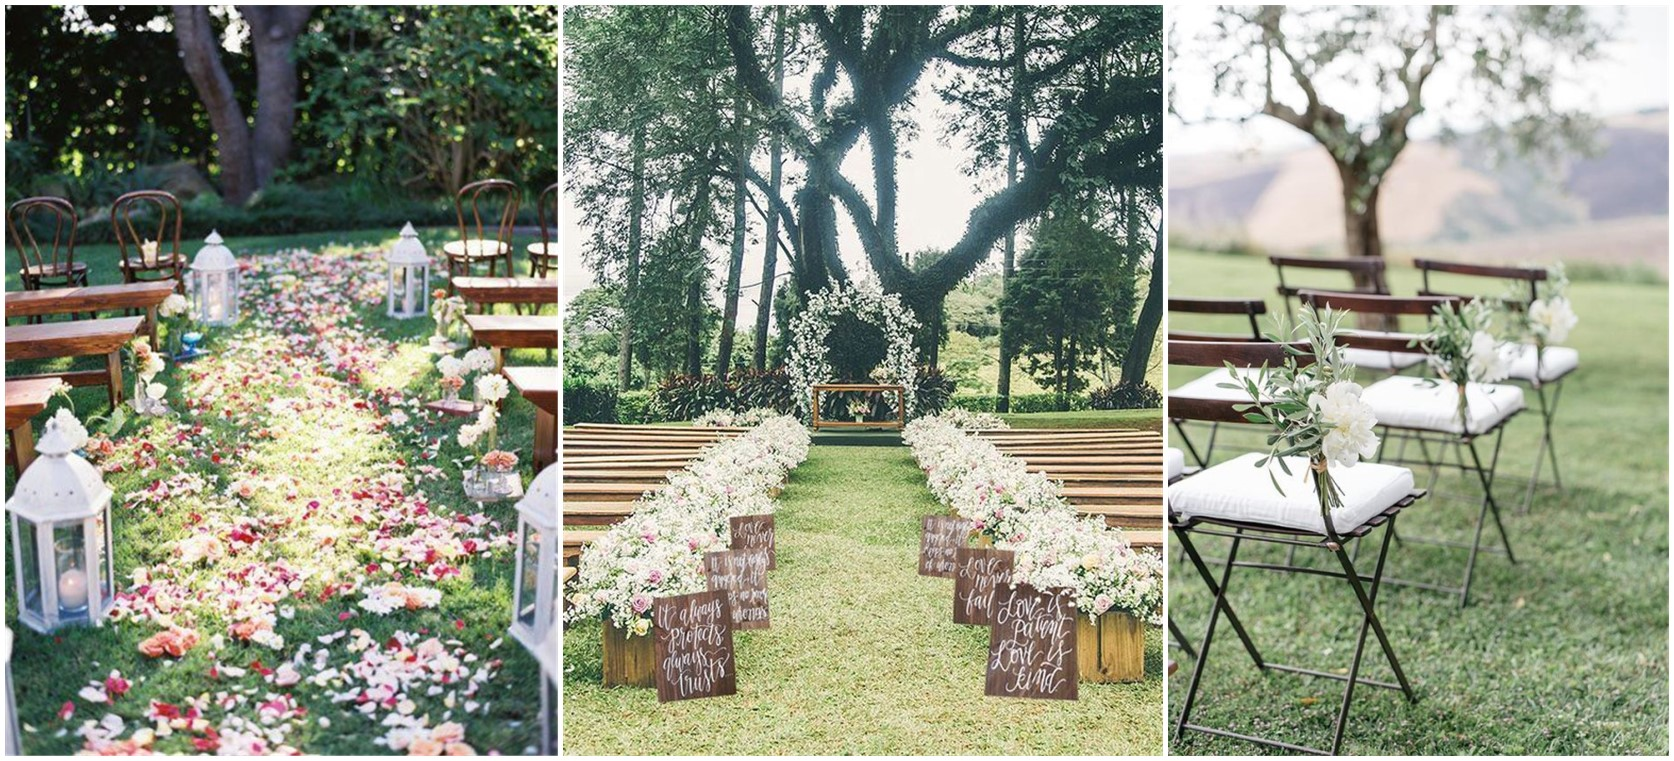 Outdoor Wedding Ideas: 25 Rustic Outdoor Wedding Ceremony Decorations Ideas